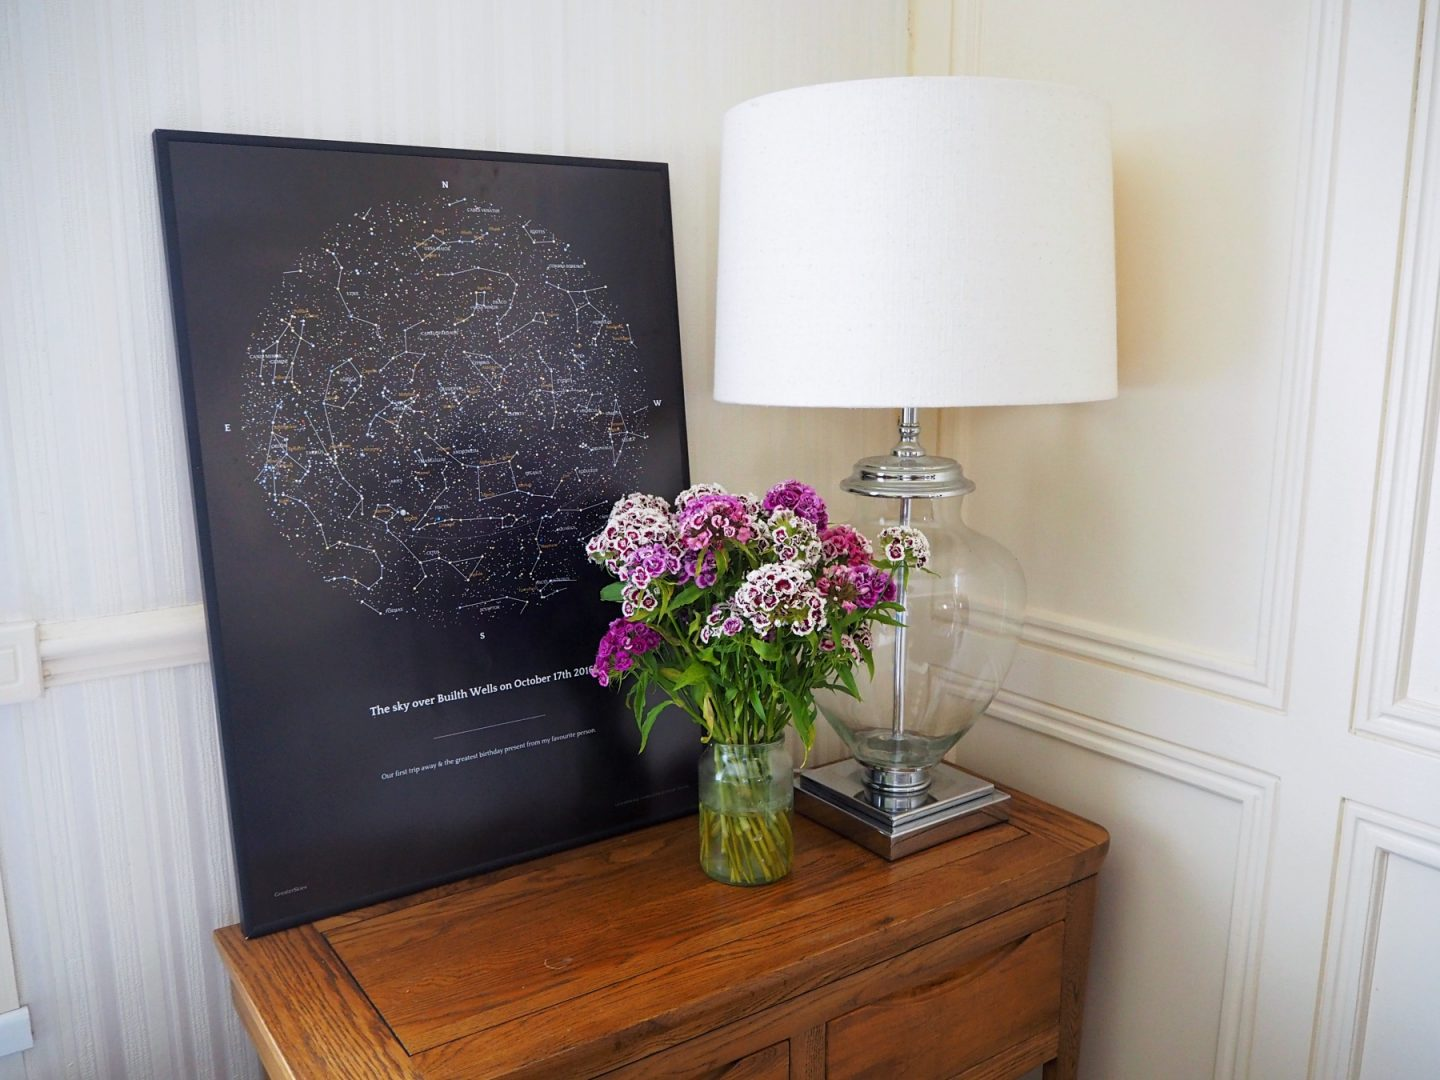 Capturing Memories With Greater Skies - print, flowers & lamp